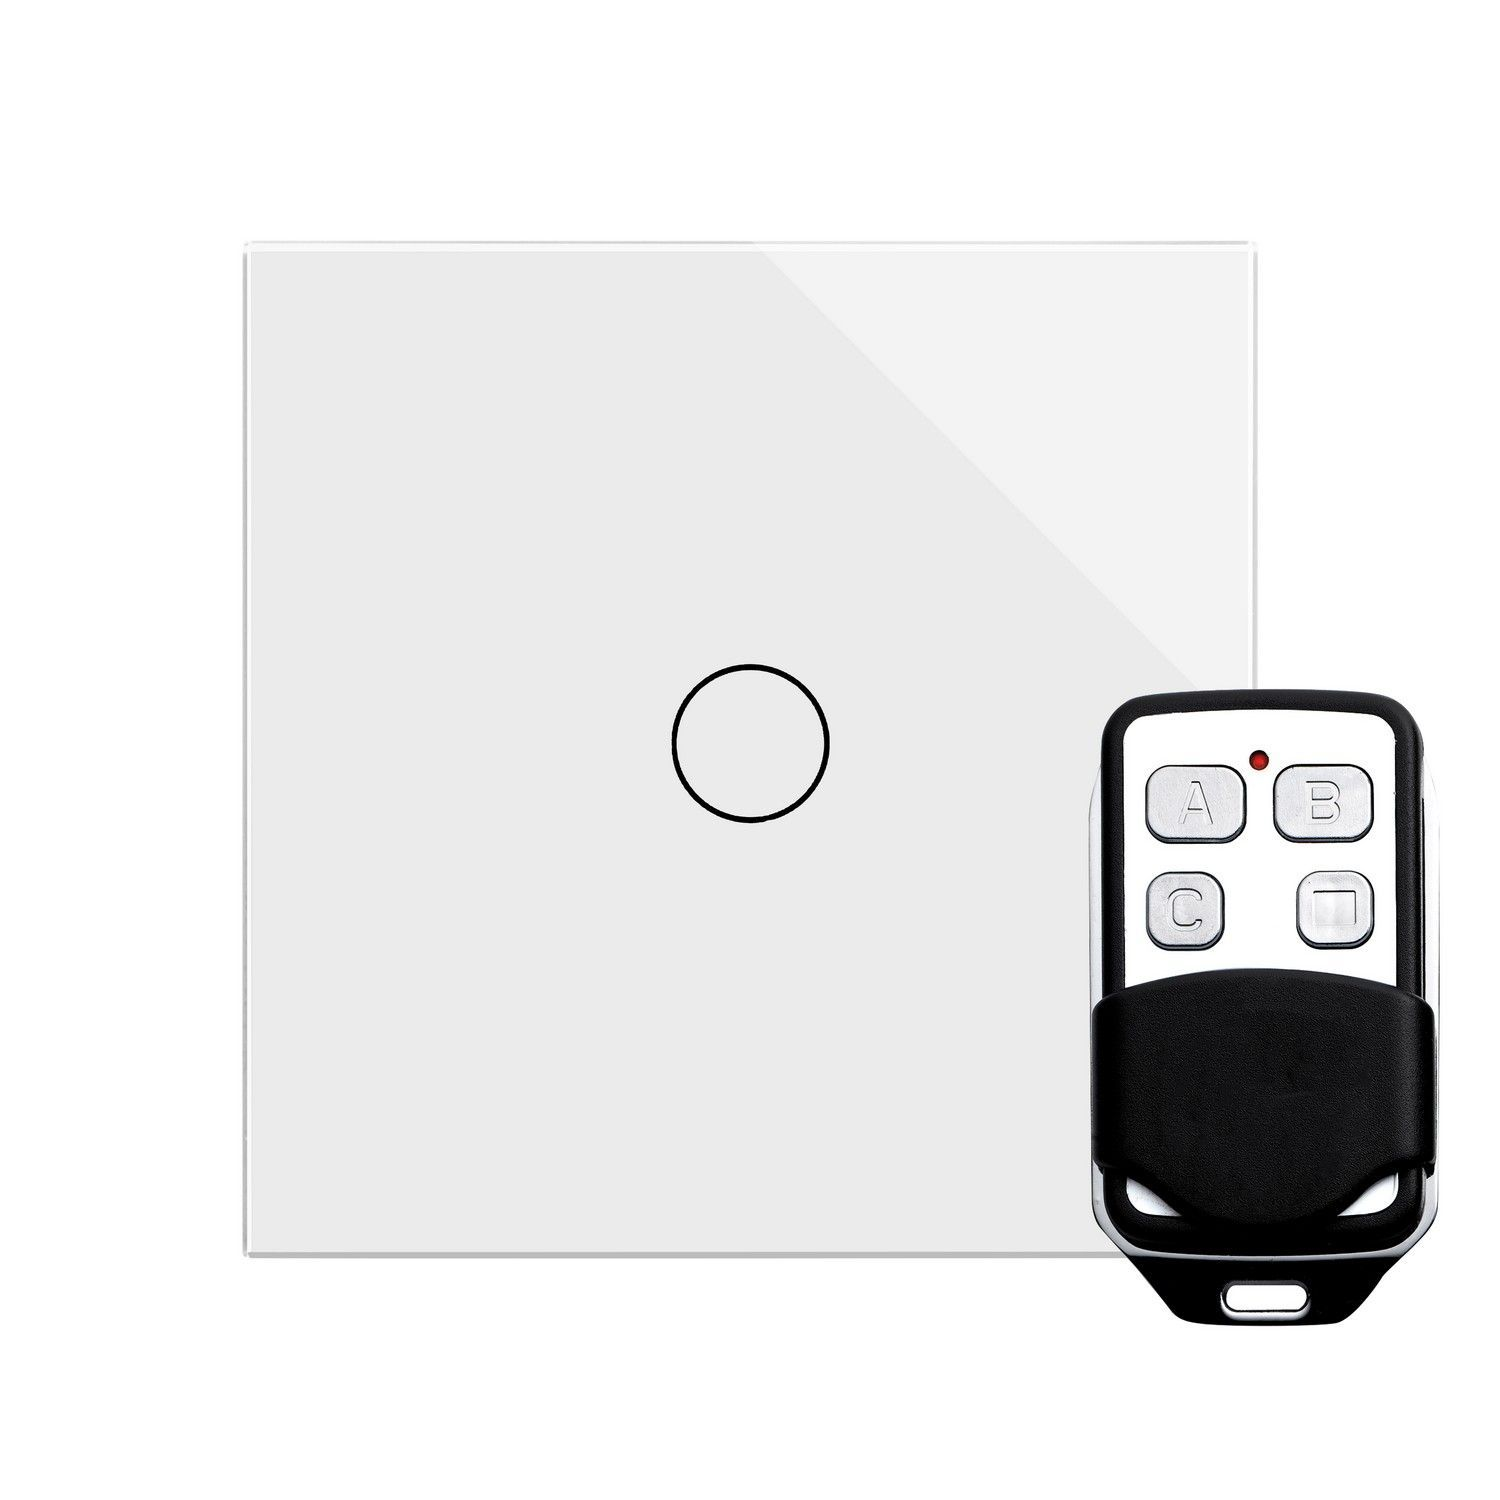 retrotouch touch remote on off light switch 1 gang 1 way white glass pg 00360 ashdown light. Black Bedroom Furniture Sets. Home Design Ideas